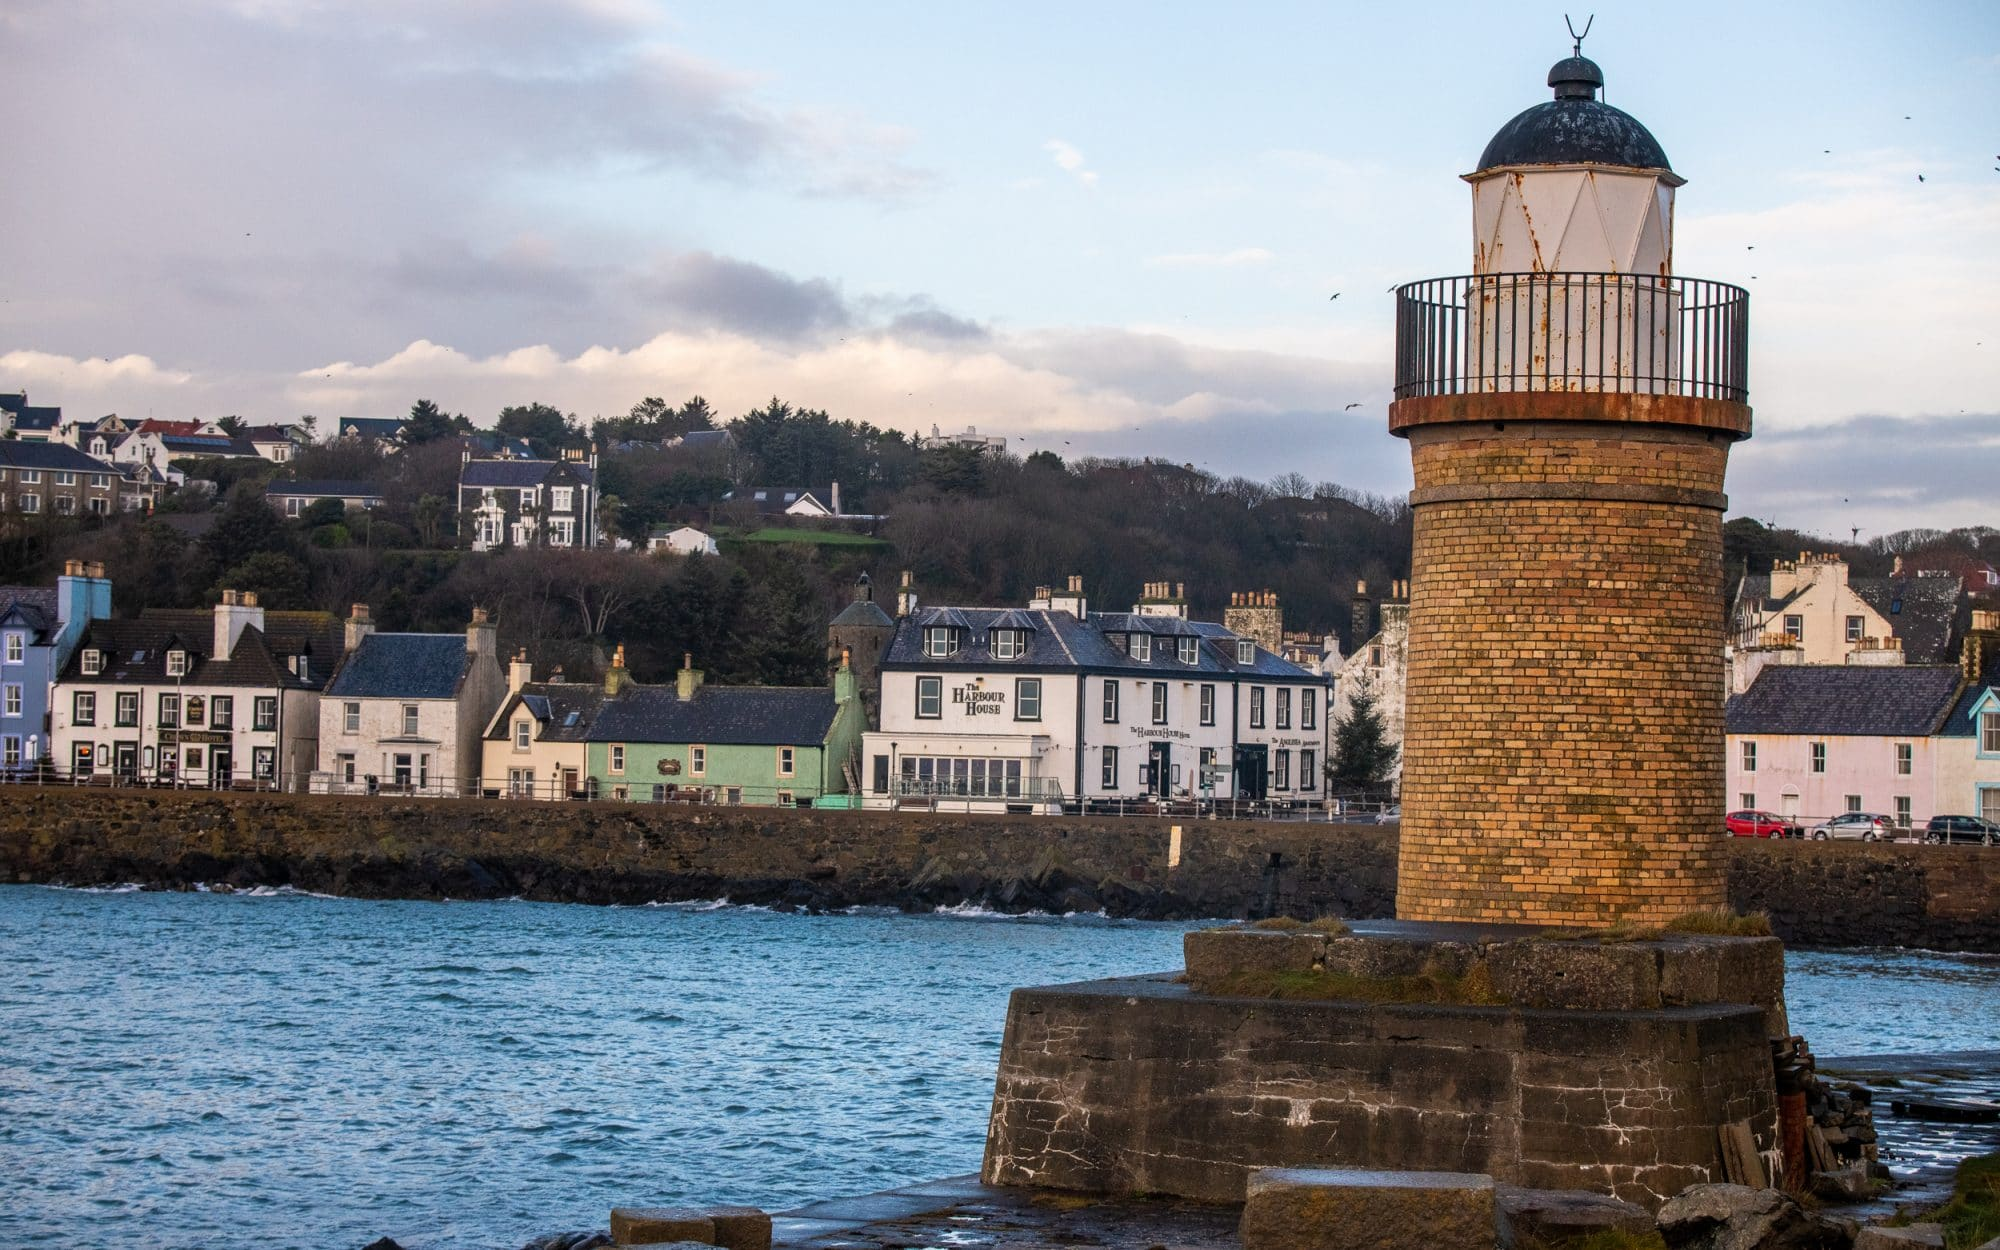 on-portpatrick-quay-sir-edwards-roadtrip